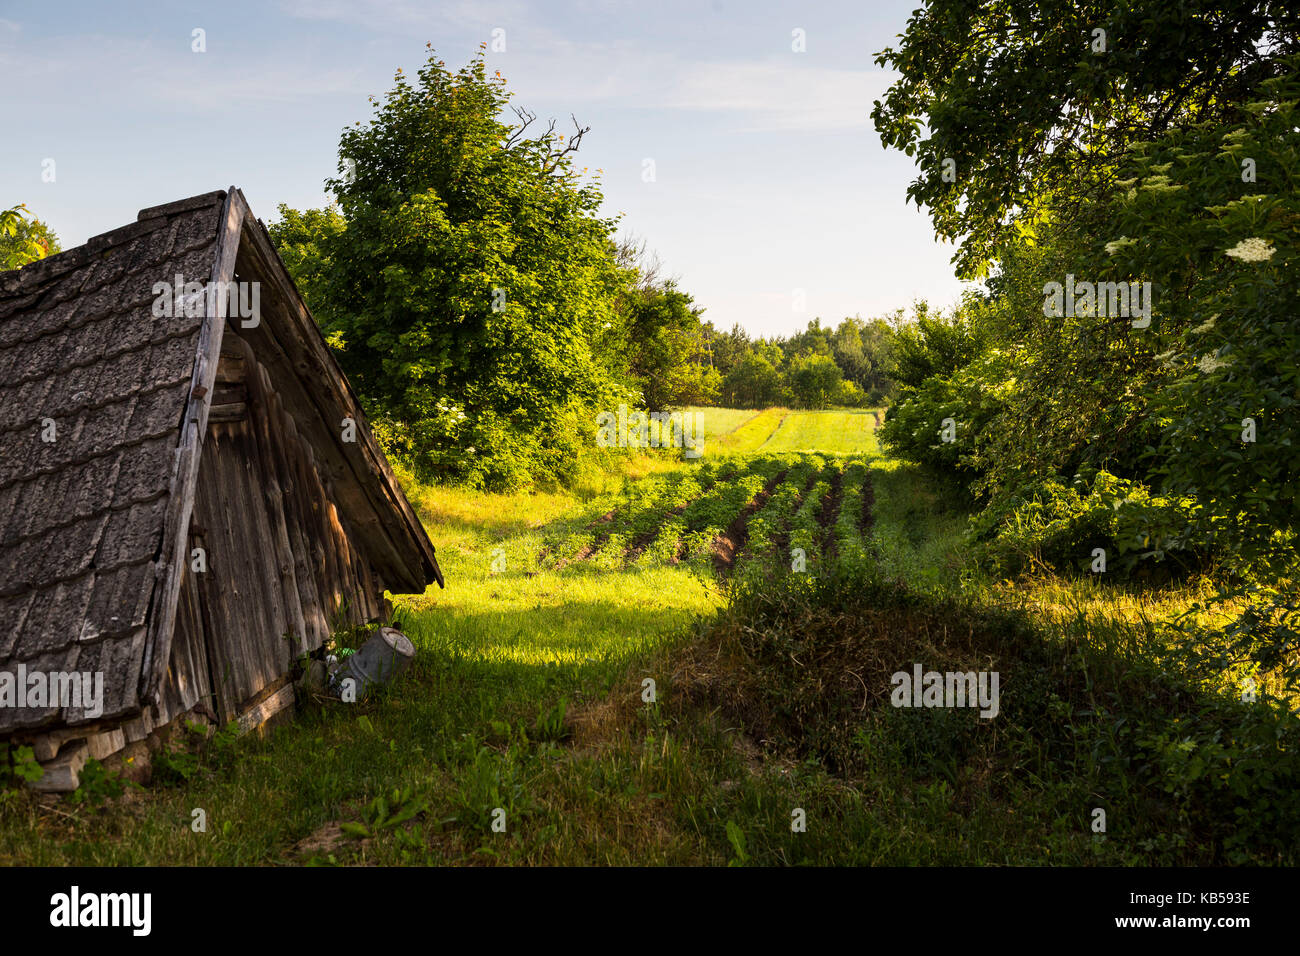 Europe, Poland, Podlaskie Voivodeship, Knyszynska Forest Stock Photo